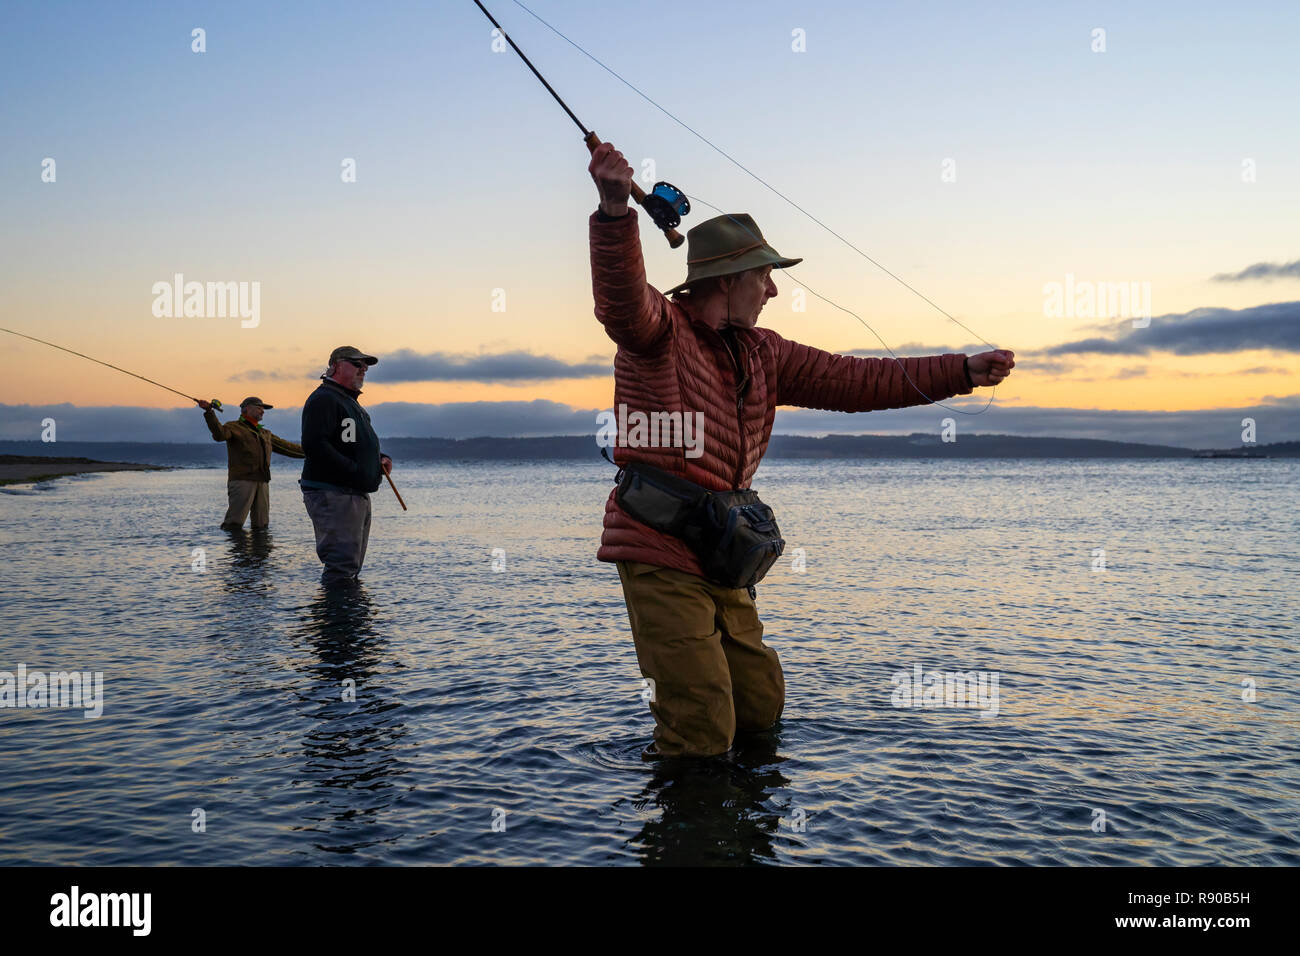 Two fly fishermen cast for searun coastal cutthroat trout and salmon with their guide standing between them on a salt water beach on a beach on the we Stock Photo